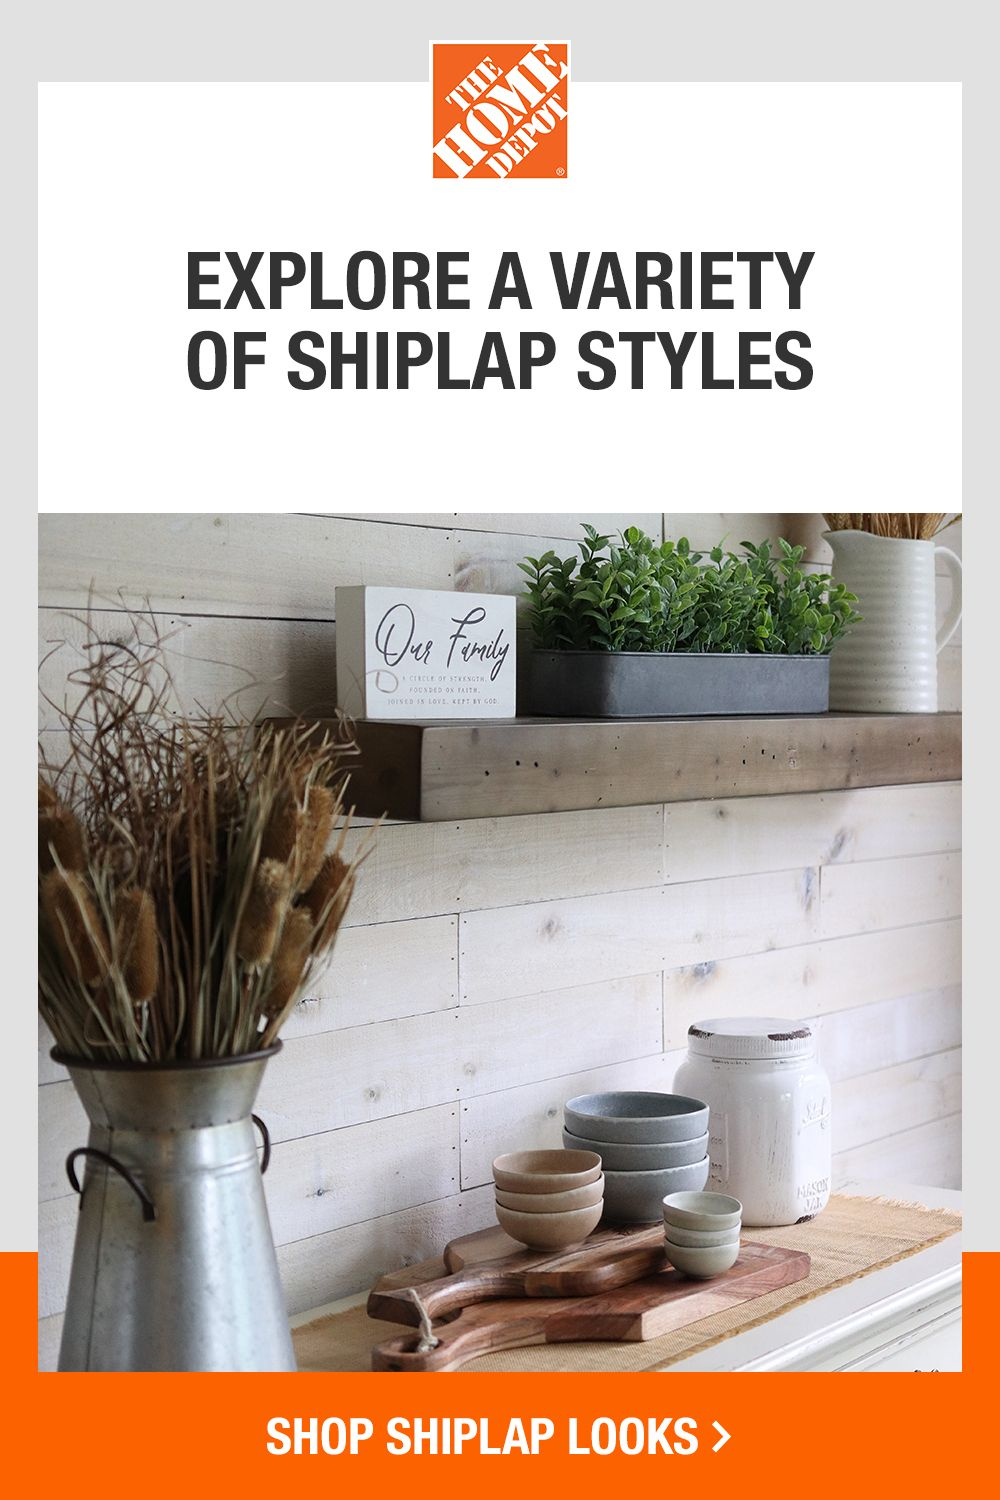 Explore shiplap looks to give your space a new feel, and complete your DIY project with ease with our how-to guides. Tap to shop shiplap looks at The Home Depot.